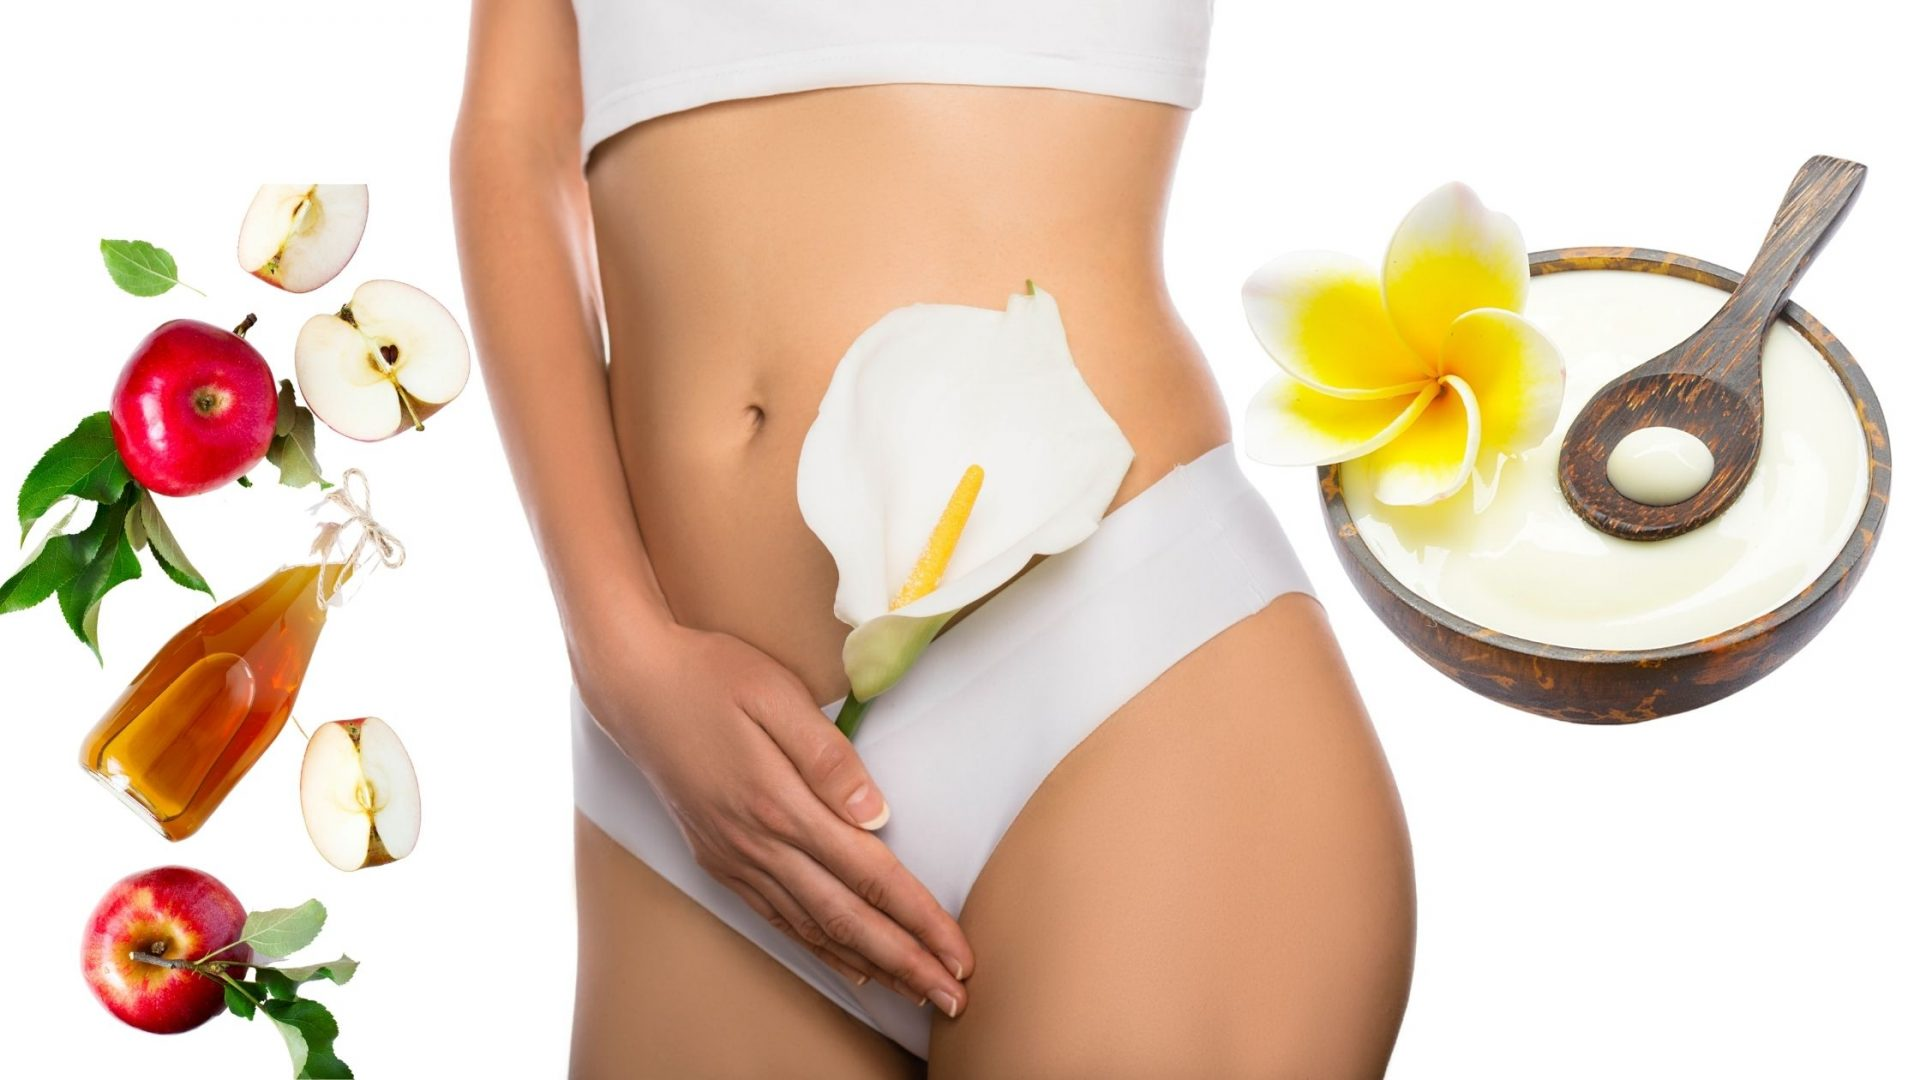 Excessive vaginal discharge under control with 6 remedies